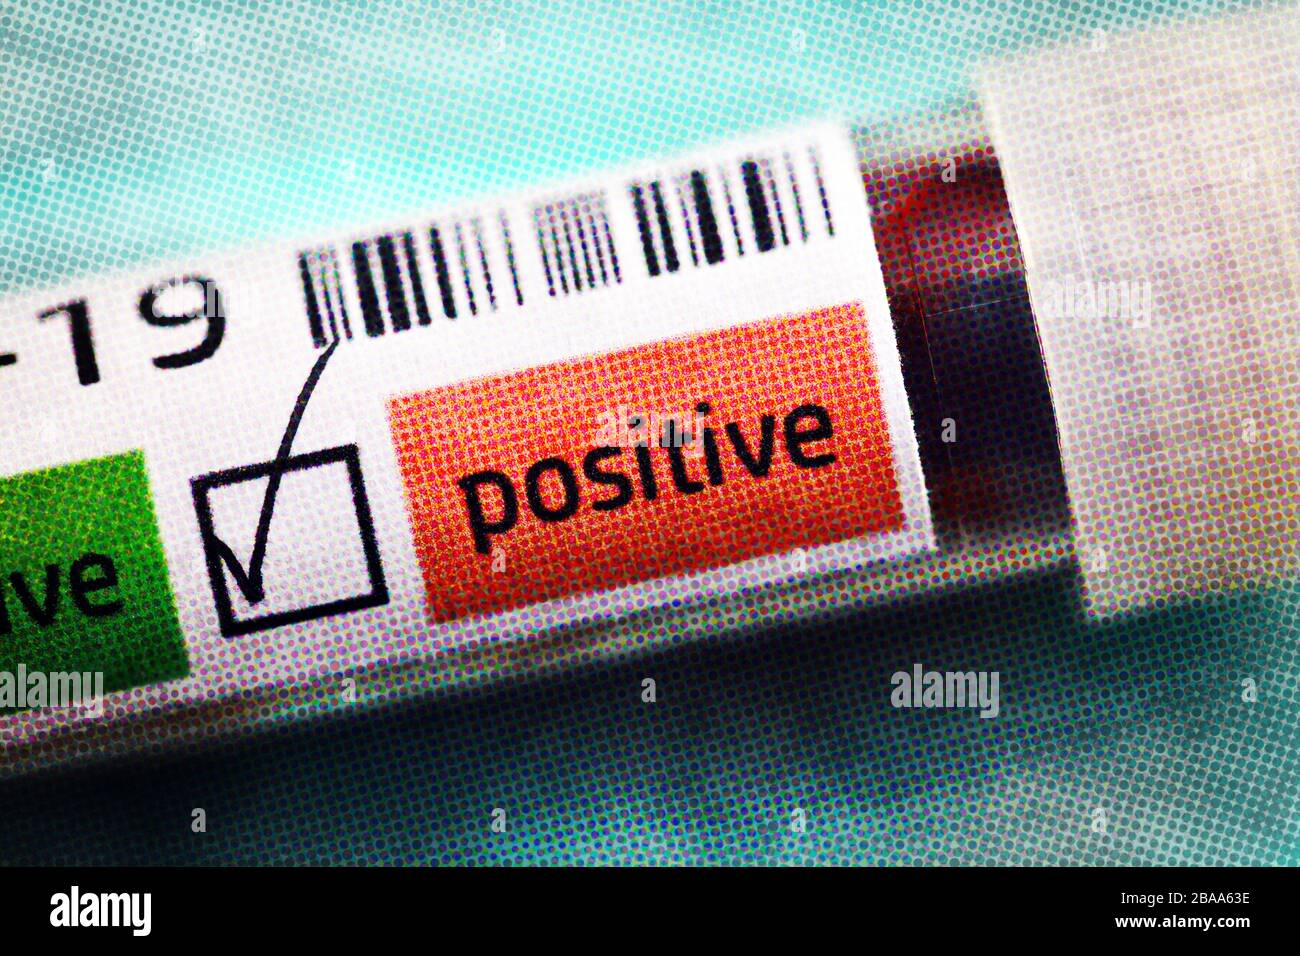 Covid blood sample tube 19 with positive Covid 19 findings, symbolic photo Coronavirus, Covid-19-Blutentnahmeröhrchen mit positivem Covid-19-Befund, S Stock Photo